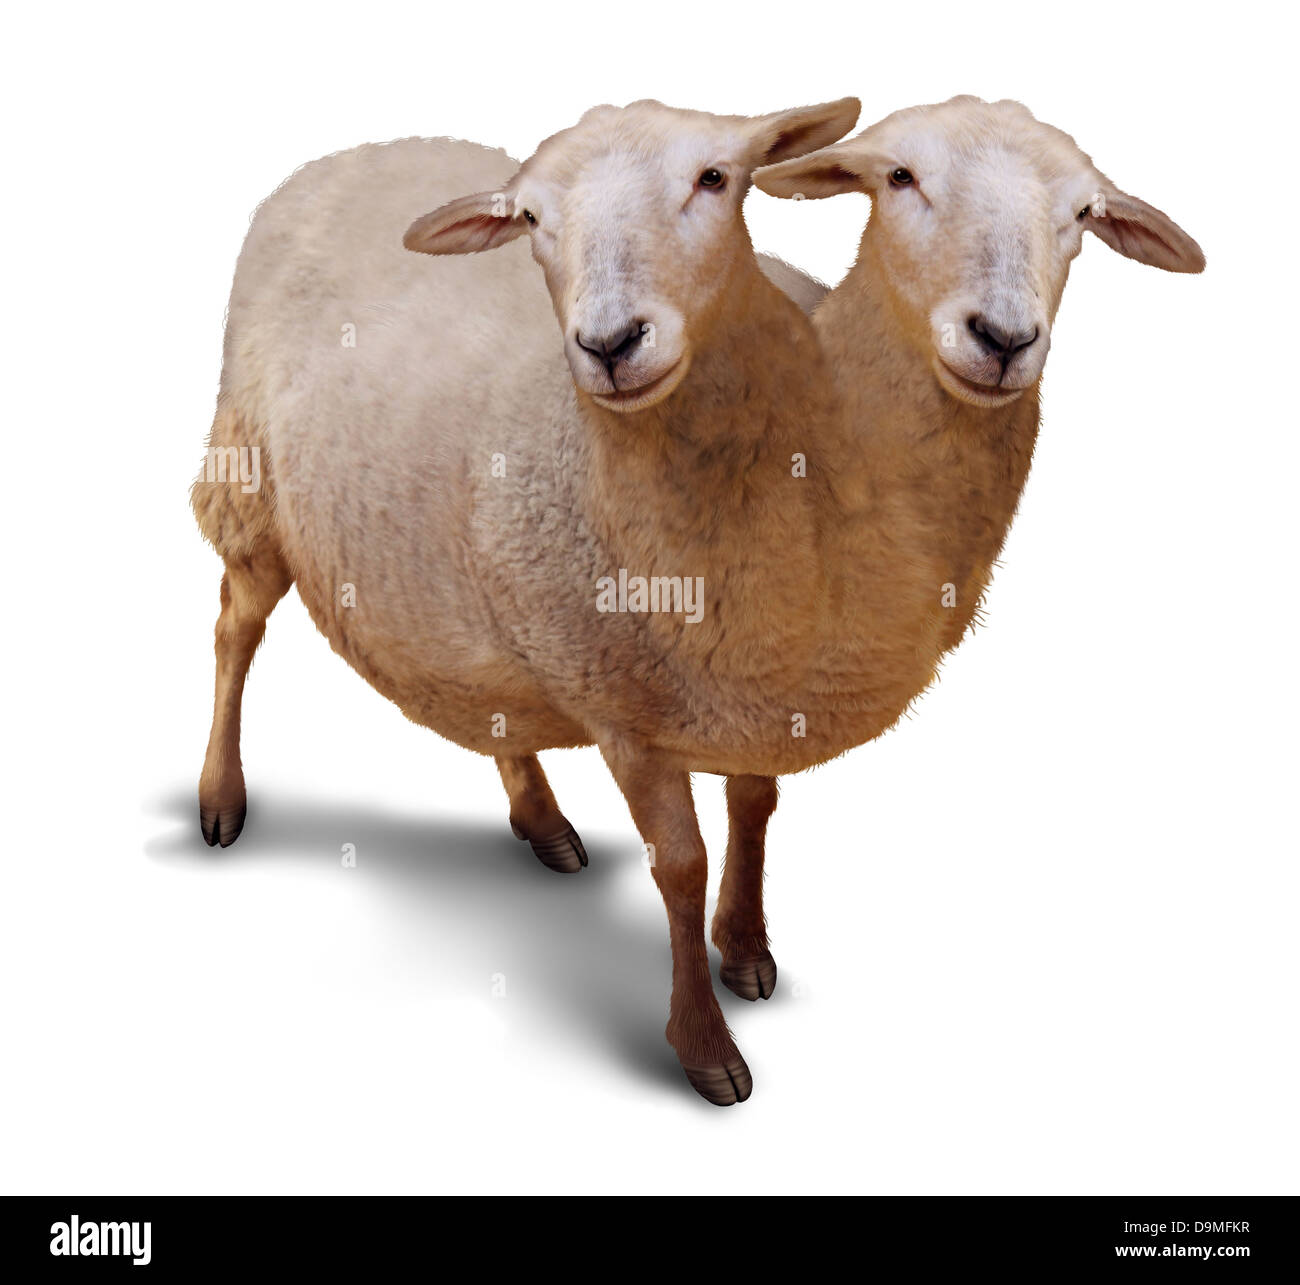 Genetic disorder and abnormality in biological DNA sequence with a farm sheep as a conjoined twin joined together - Stock Image